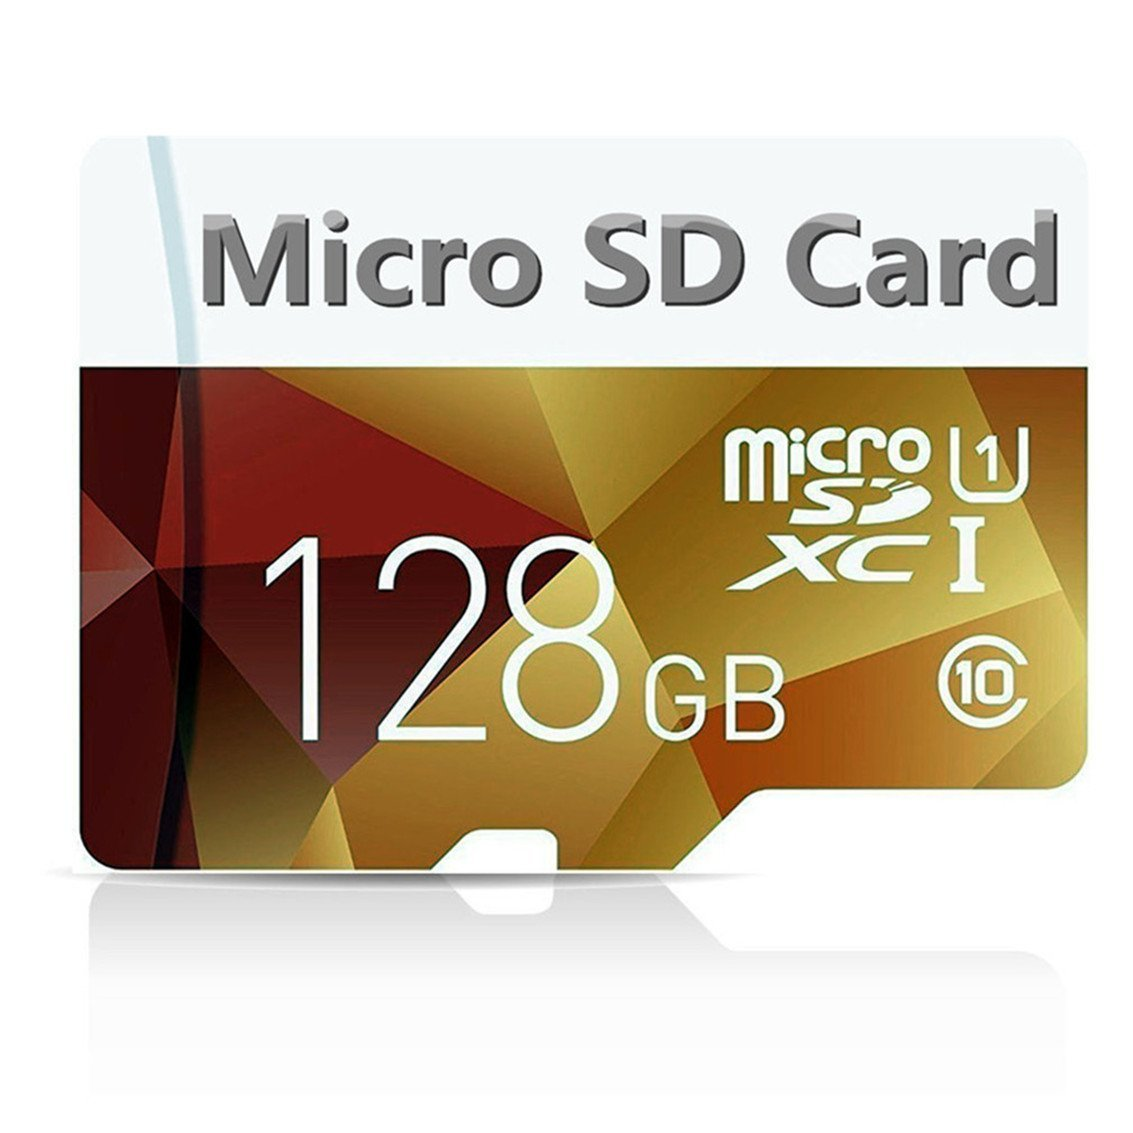 128GB Micro SD Card High Speed Class 10 Micro SD SDXC Card with Adapter (128GB gold)